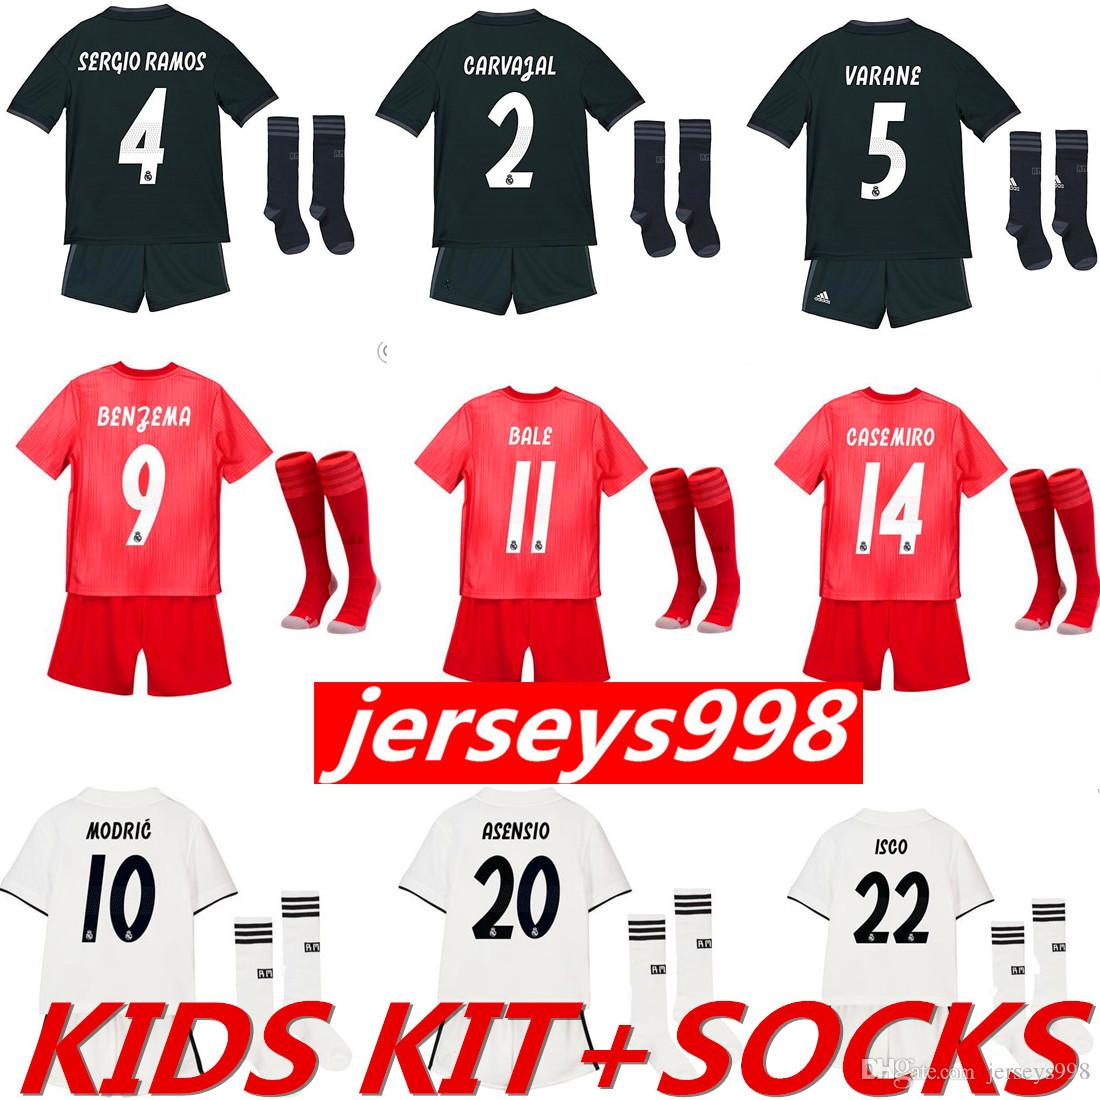 outlet store d8092 b7703 2018 2019 Real Madrid Home Kids KIT SOCKS Jerseys Mariano RONALDO SERGIO  RAMOS JAMES BALE RAMOS ISCO MODRIC Benzema football shirts